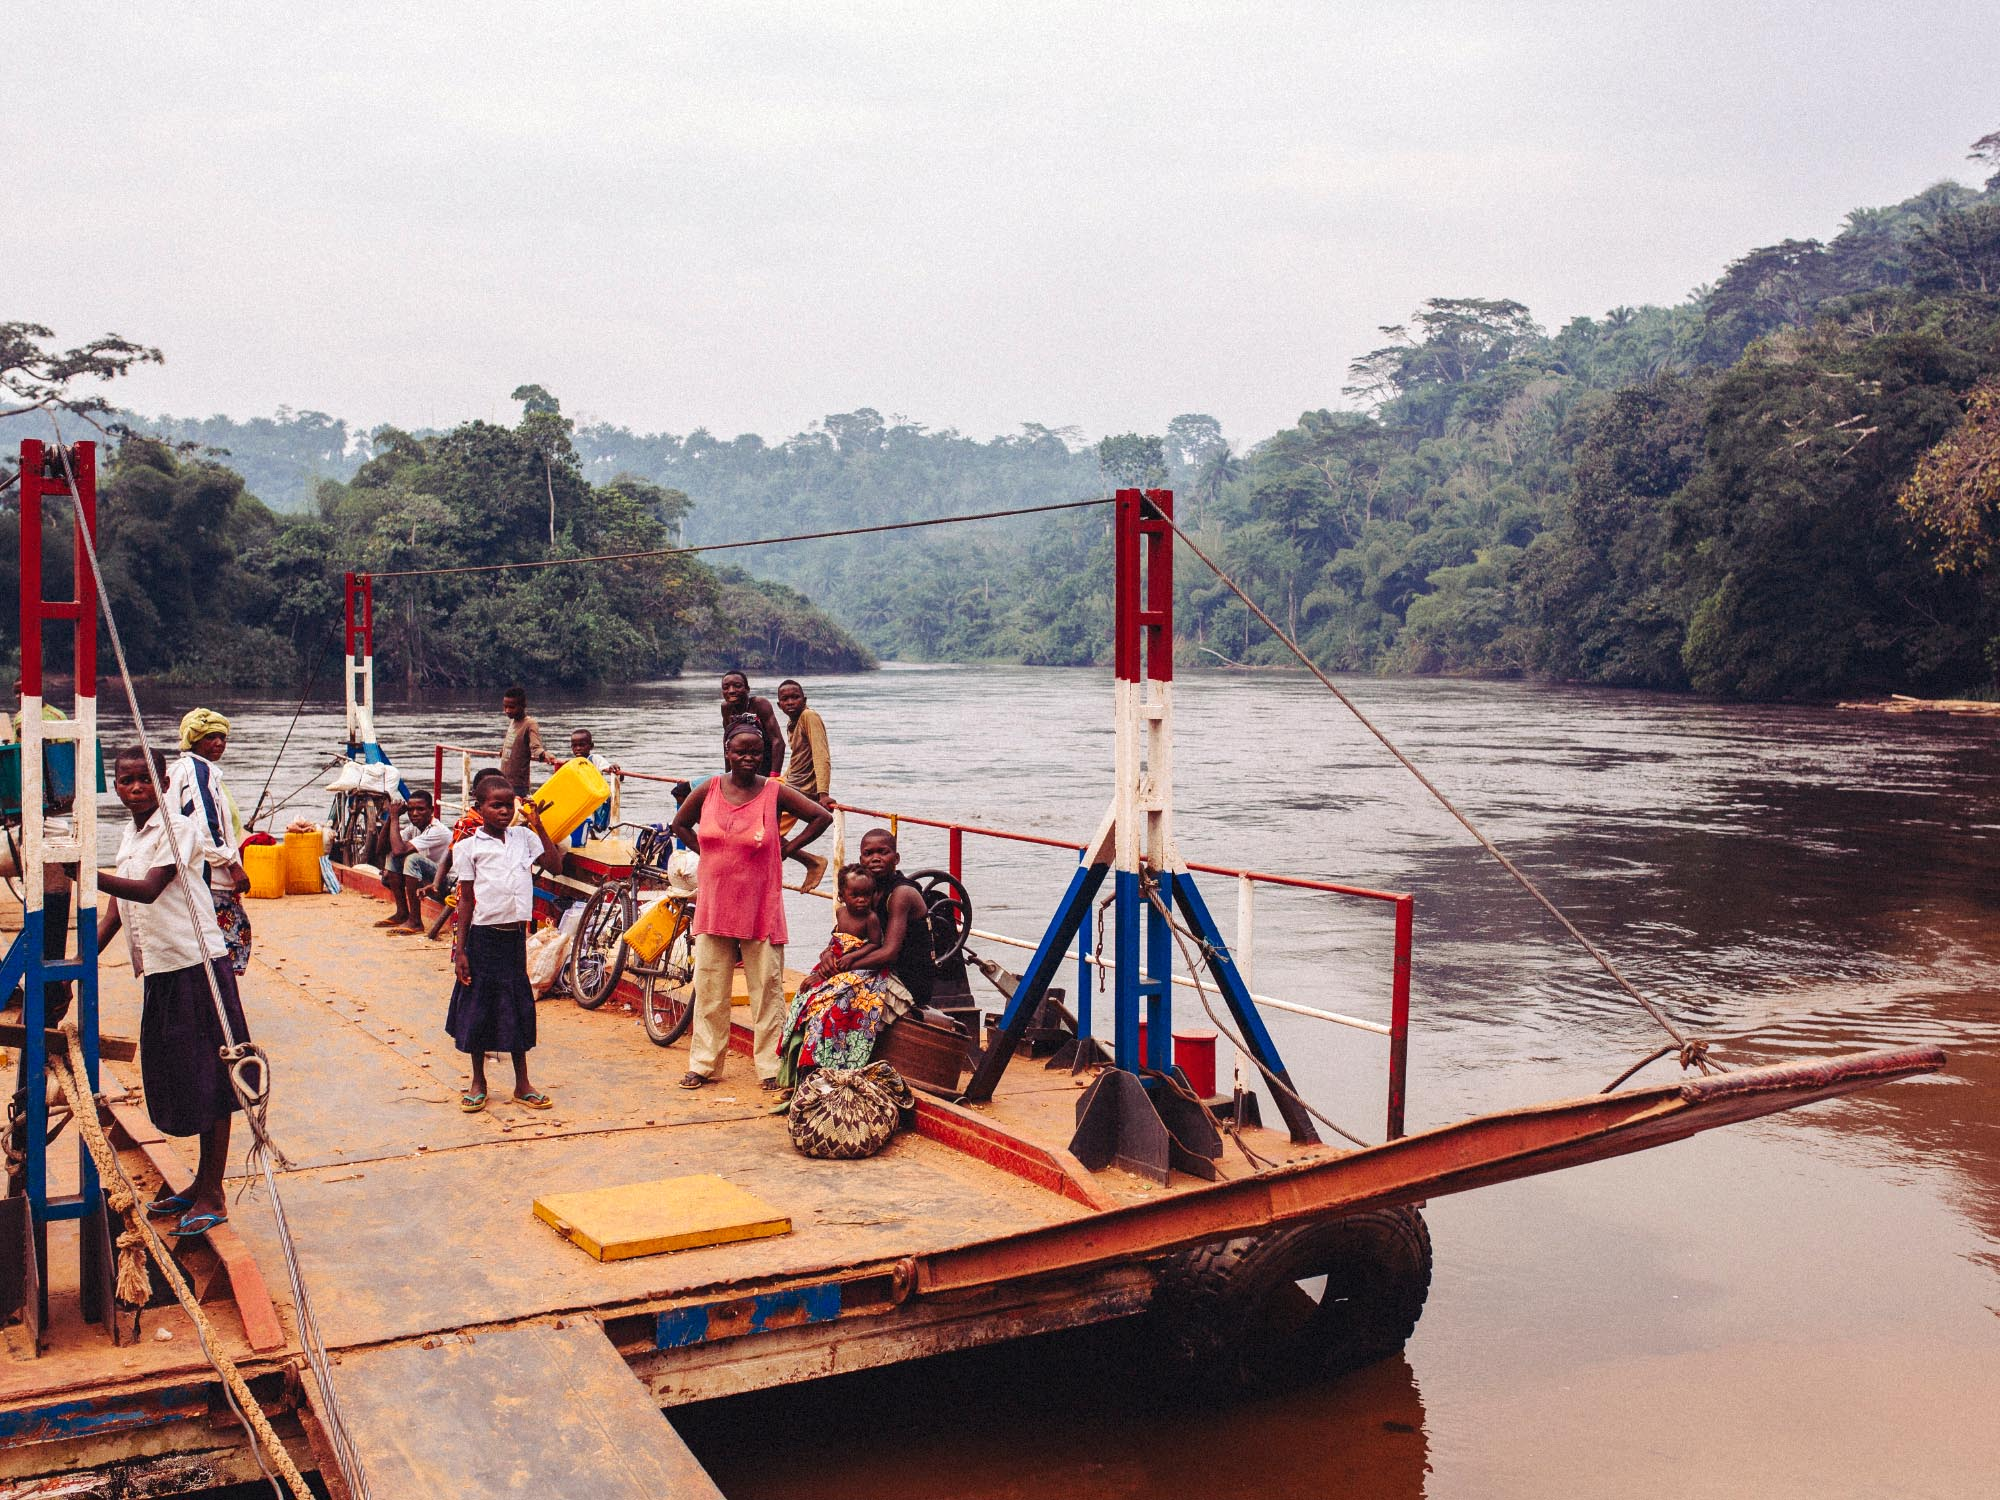 joris-hermans-visit-democratic-republic-of-congo-river.jpg